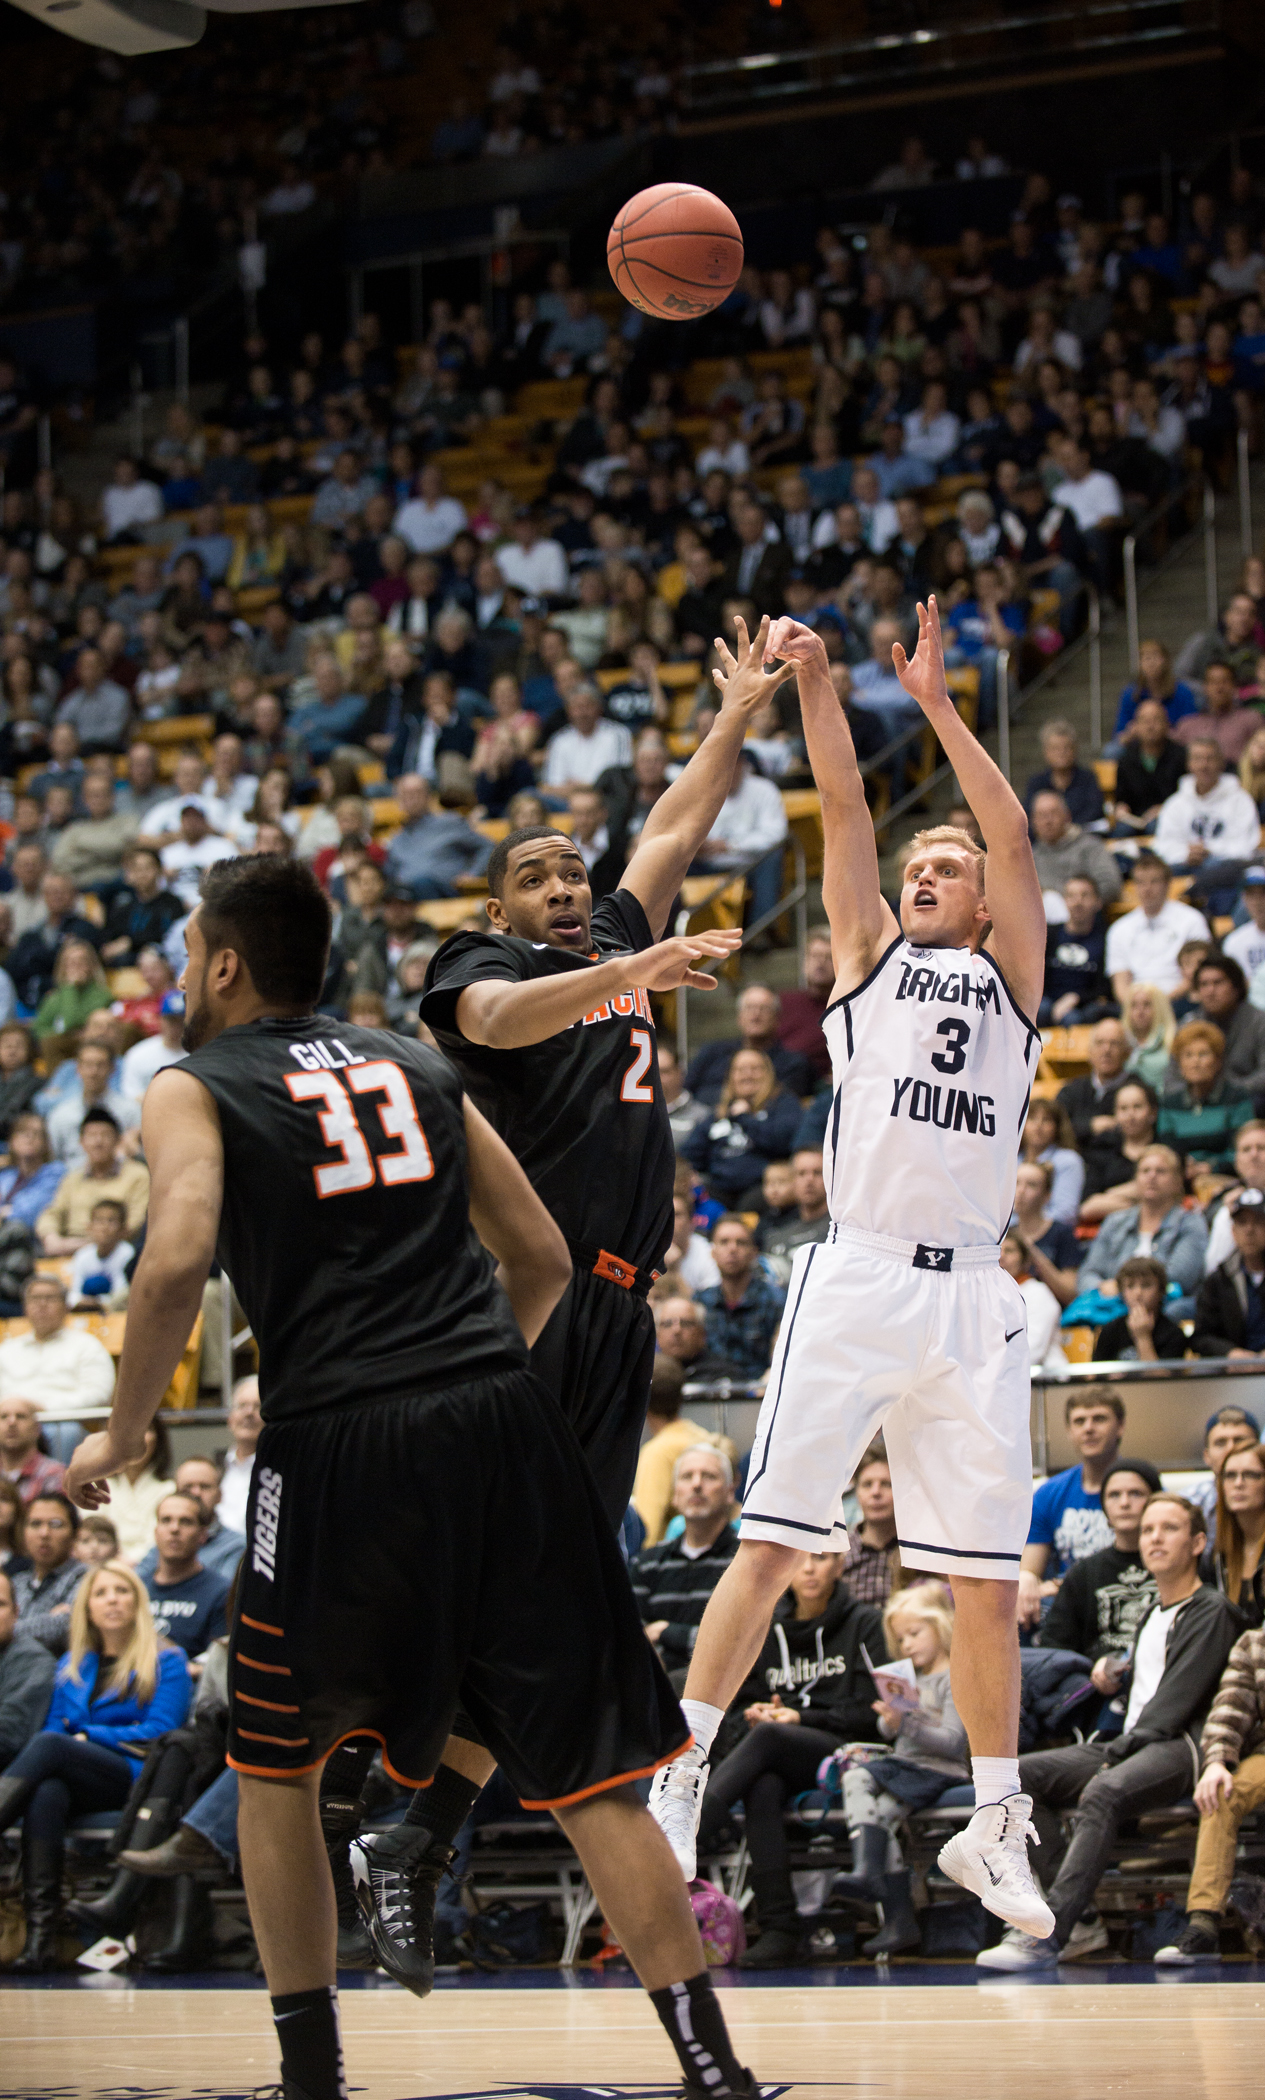 Tyler Haws shoots the ball during Thursday's game in the Marriott Center against Pacific. Haws led the Cougars with 38 points. Photo by Sarah Hill.